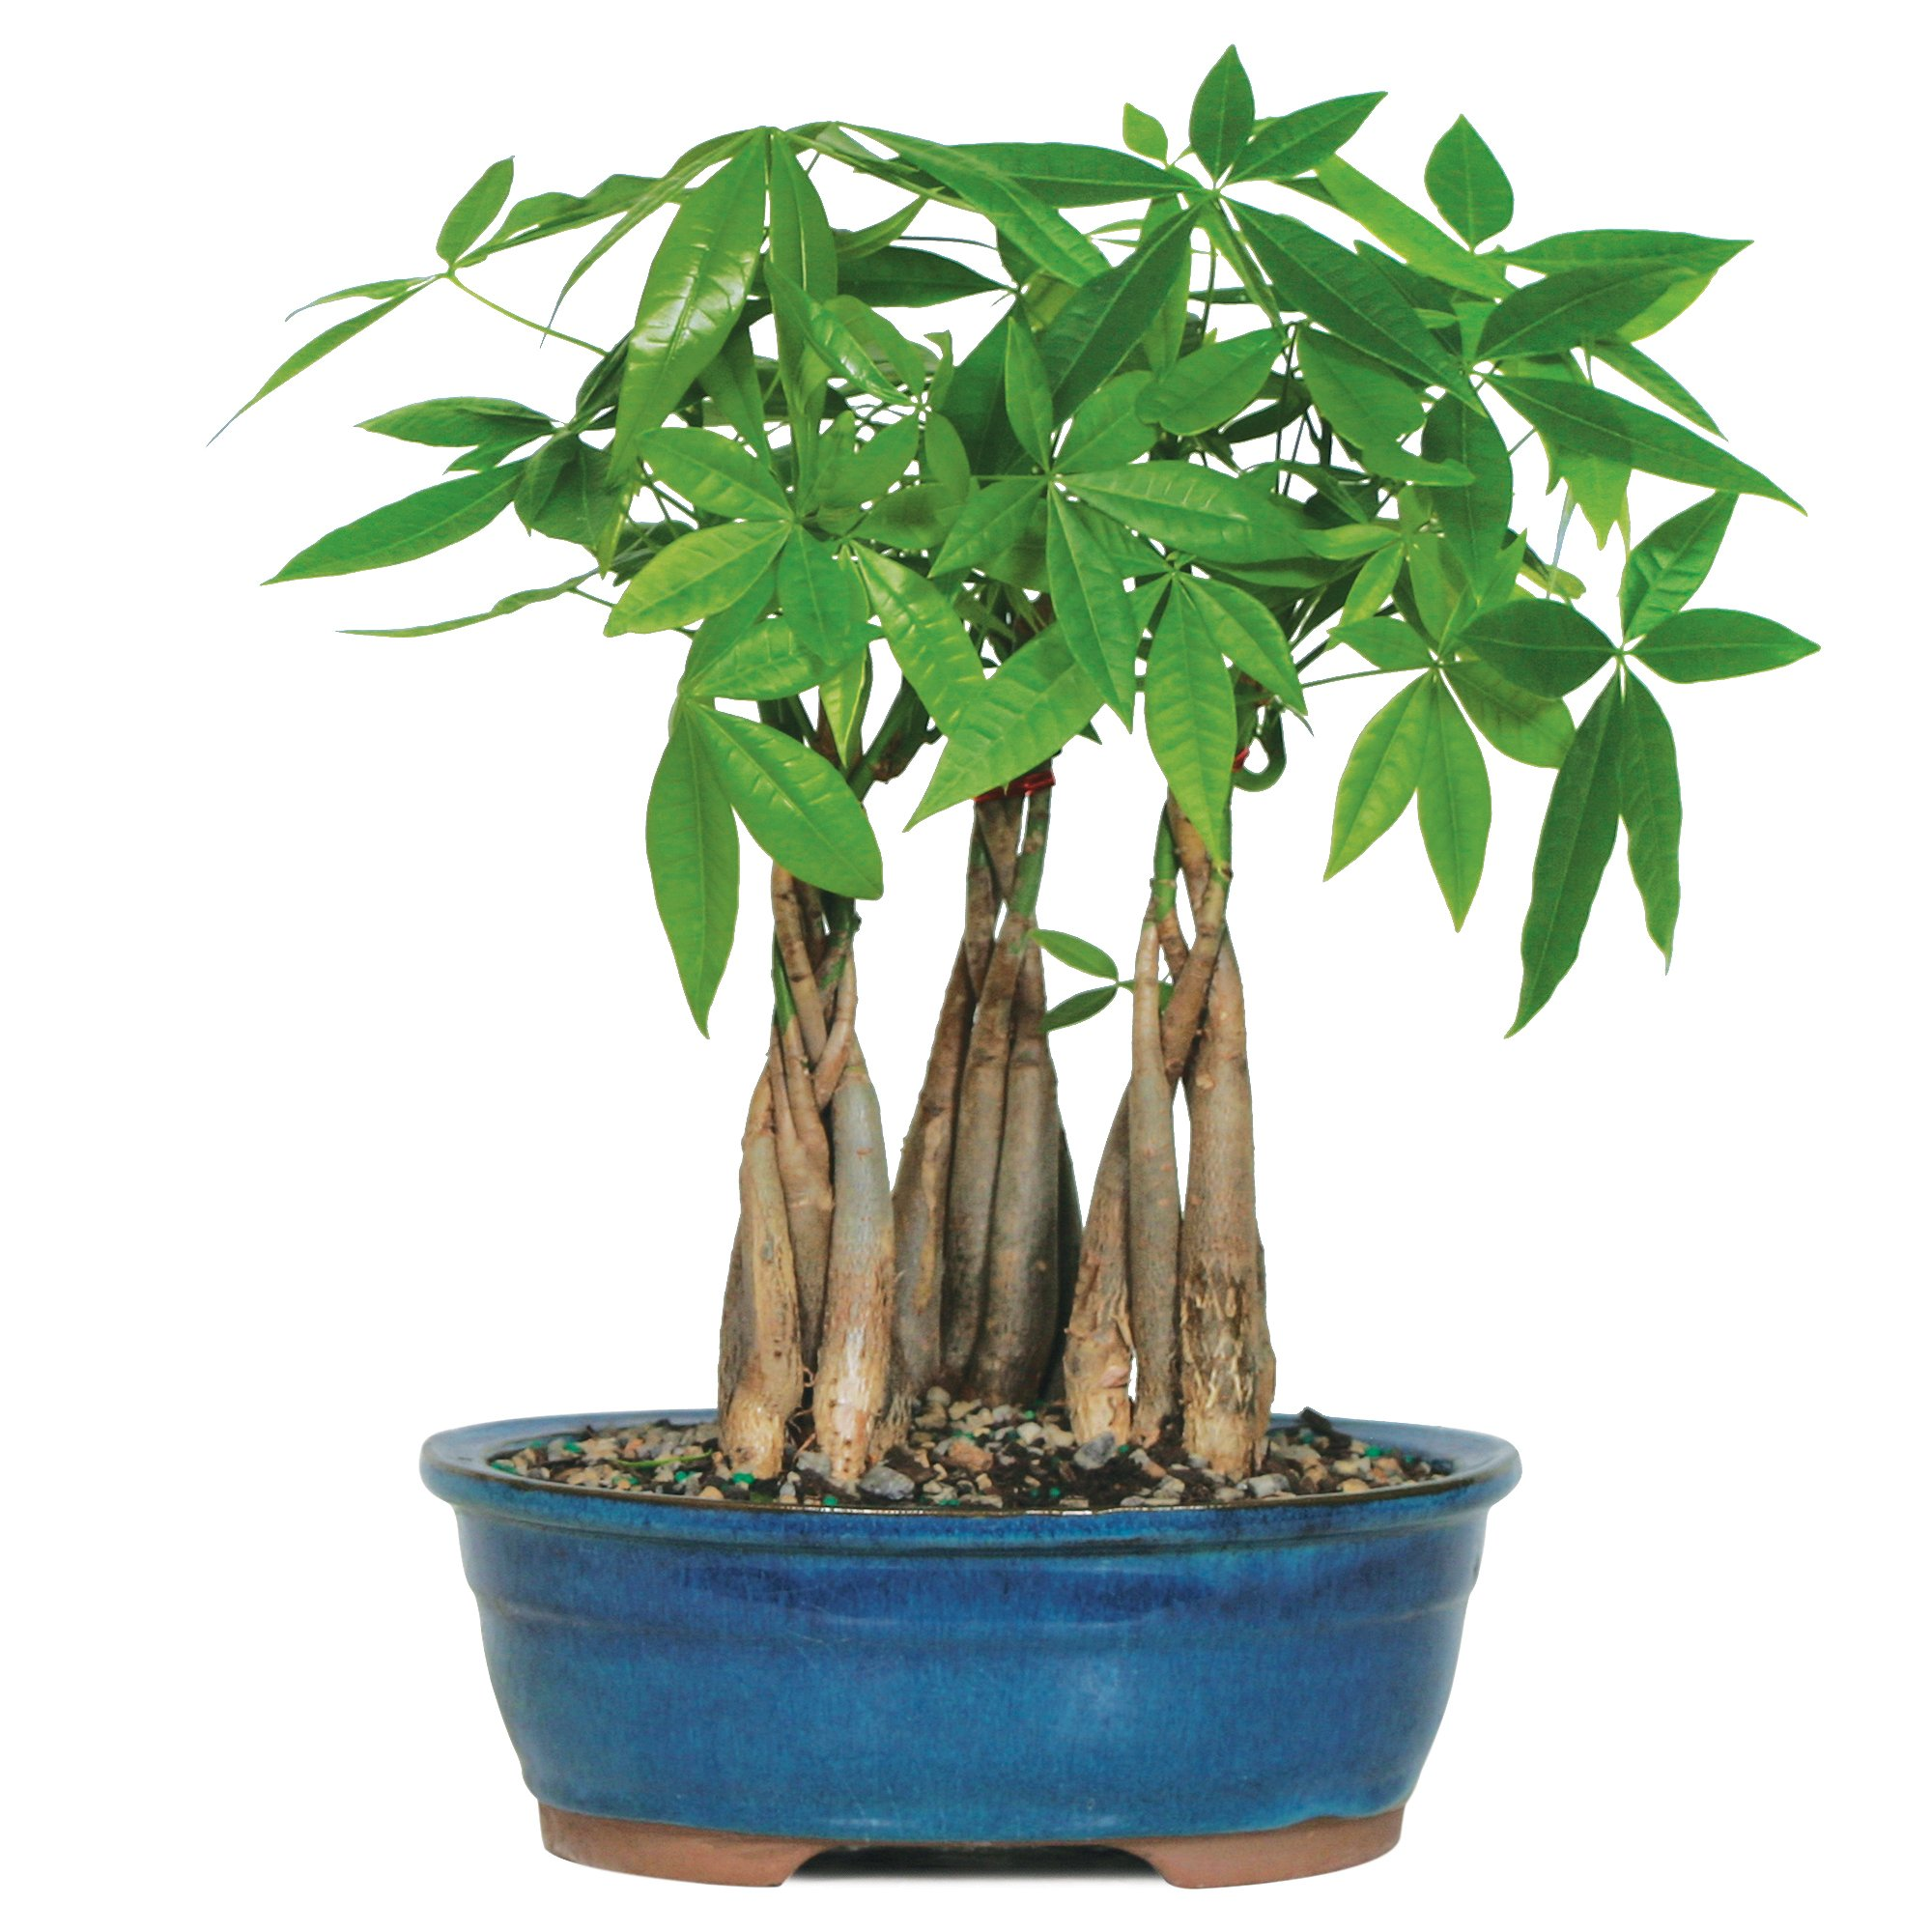 Brussel's Live Money Tree Grove Indoor Bonsai - 4 Years Old; 10'' to 14'' Tall with Decorative Container by Brussel's Bonsai